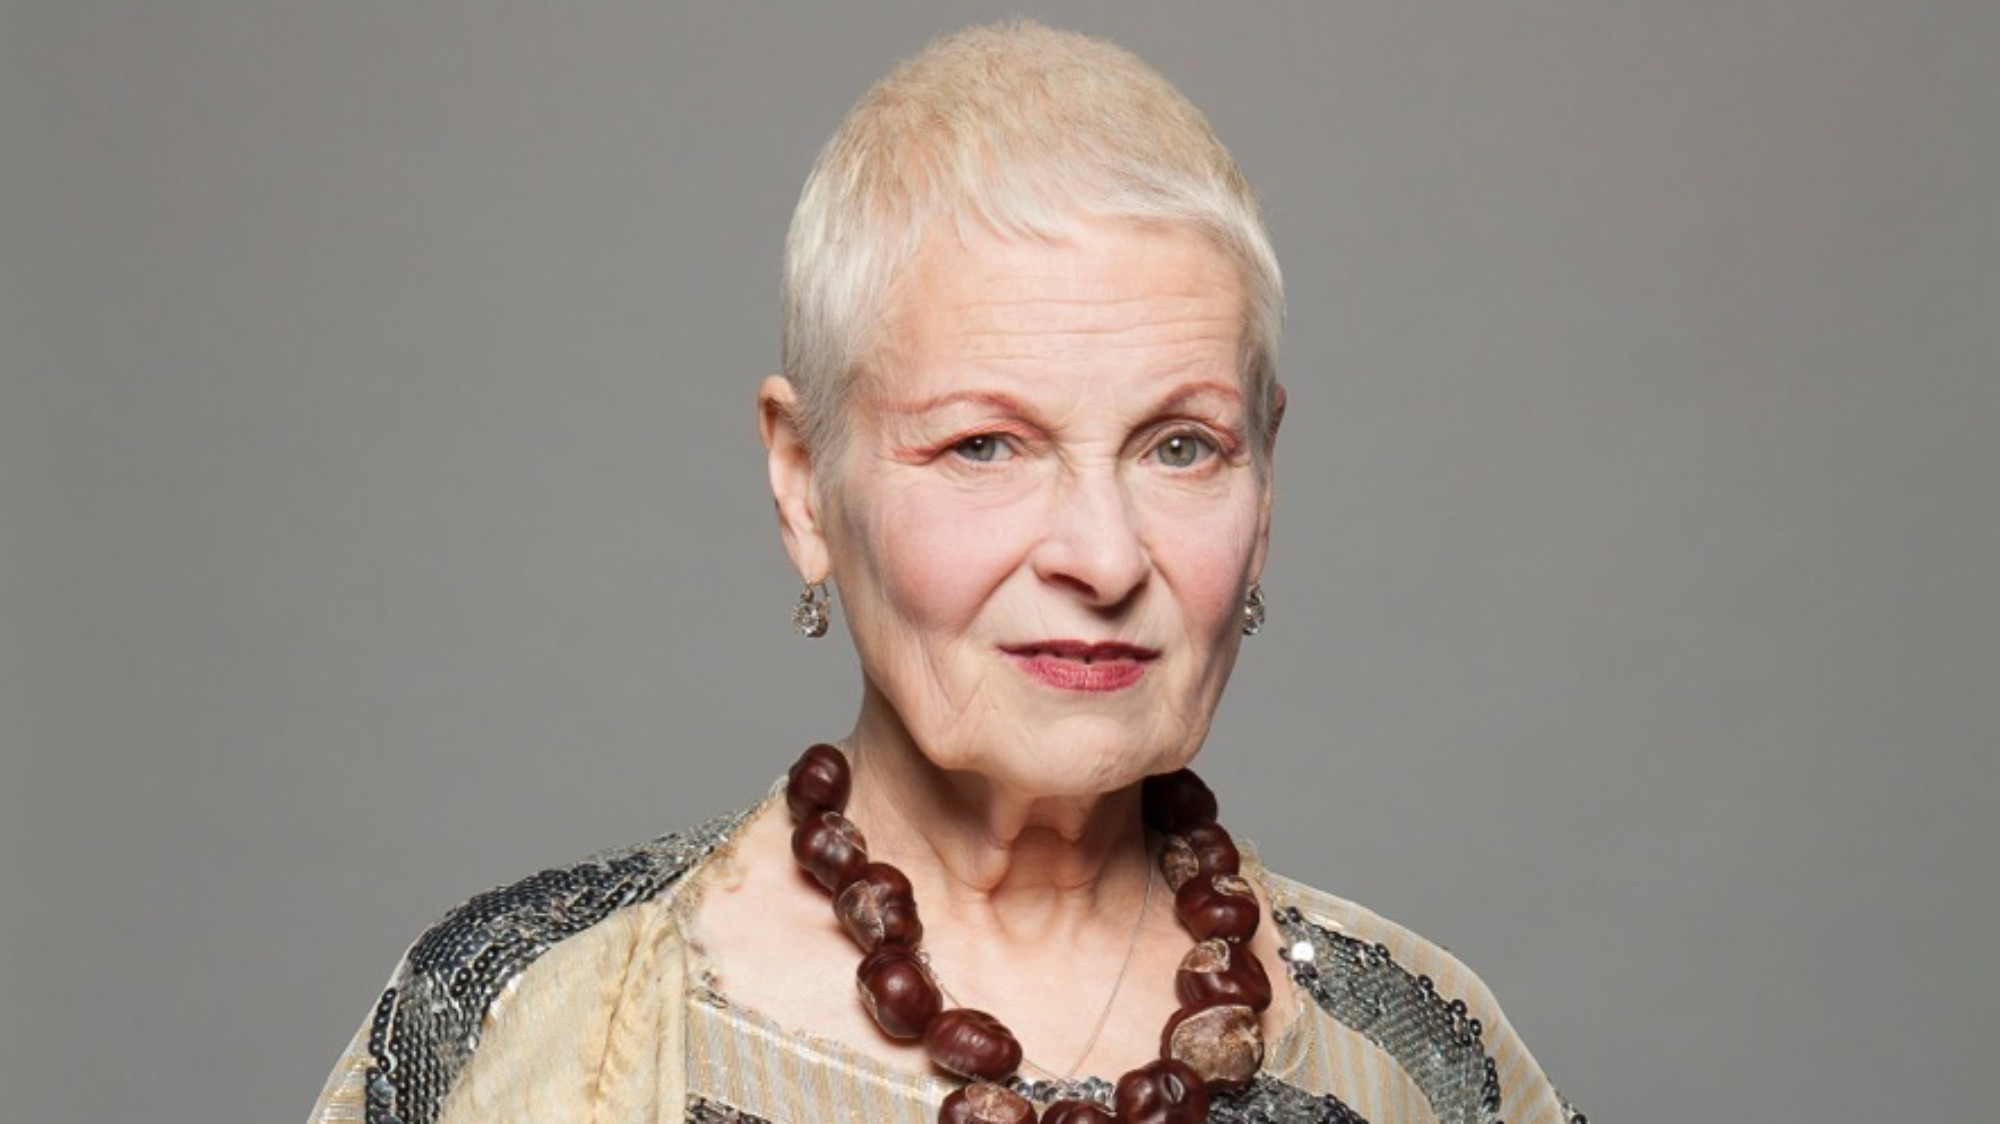 vivienne-westwood-asks-what-the-frack-is-up-with-our-government-1412779892.jpeg